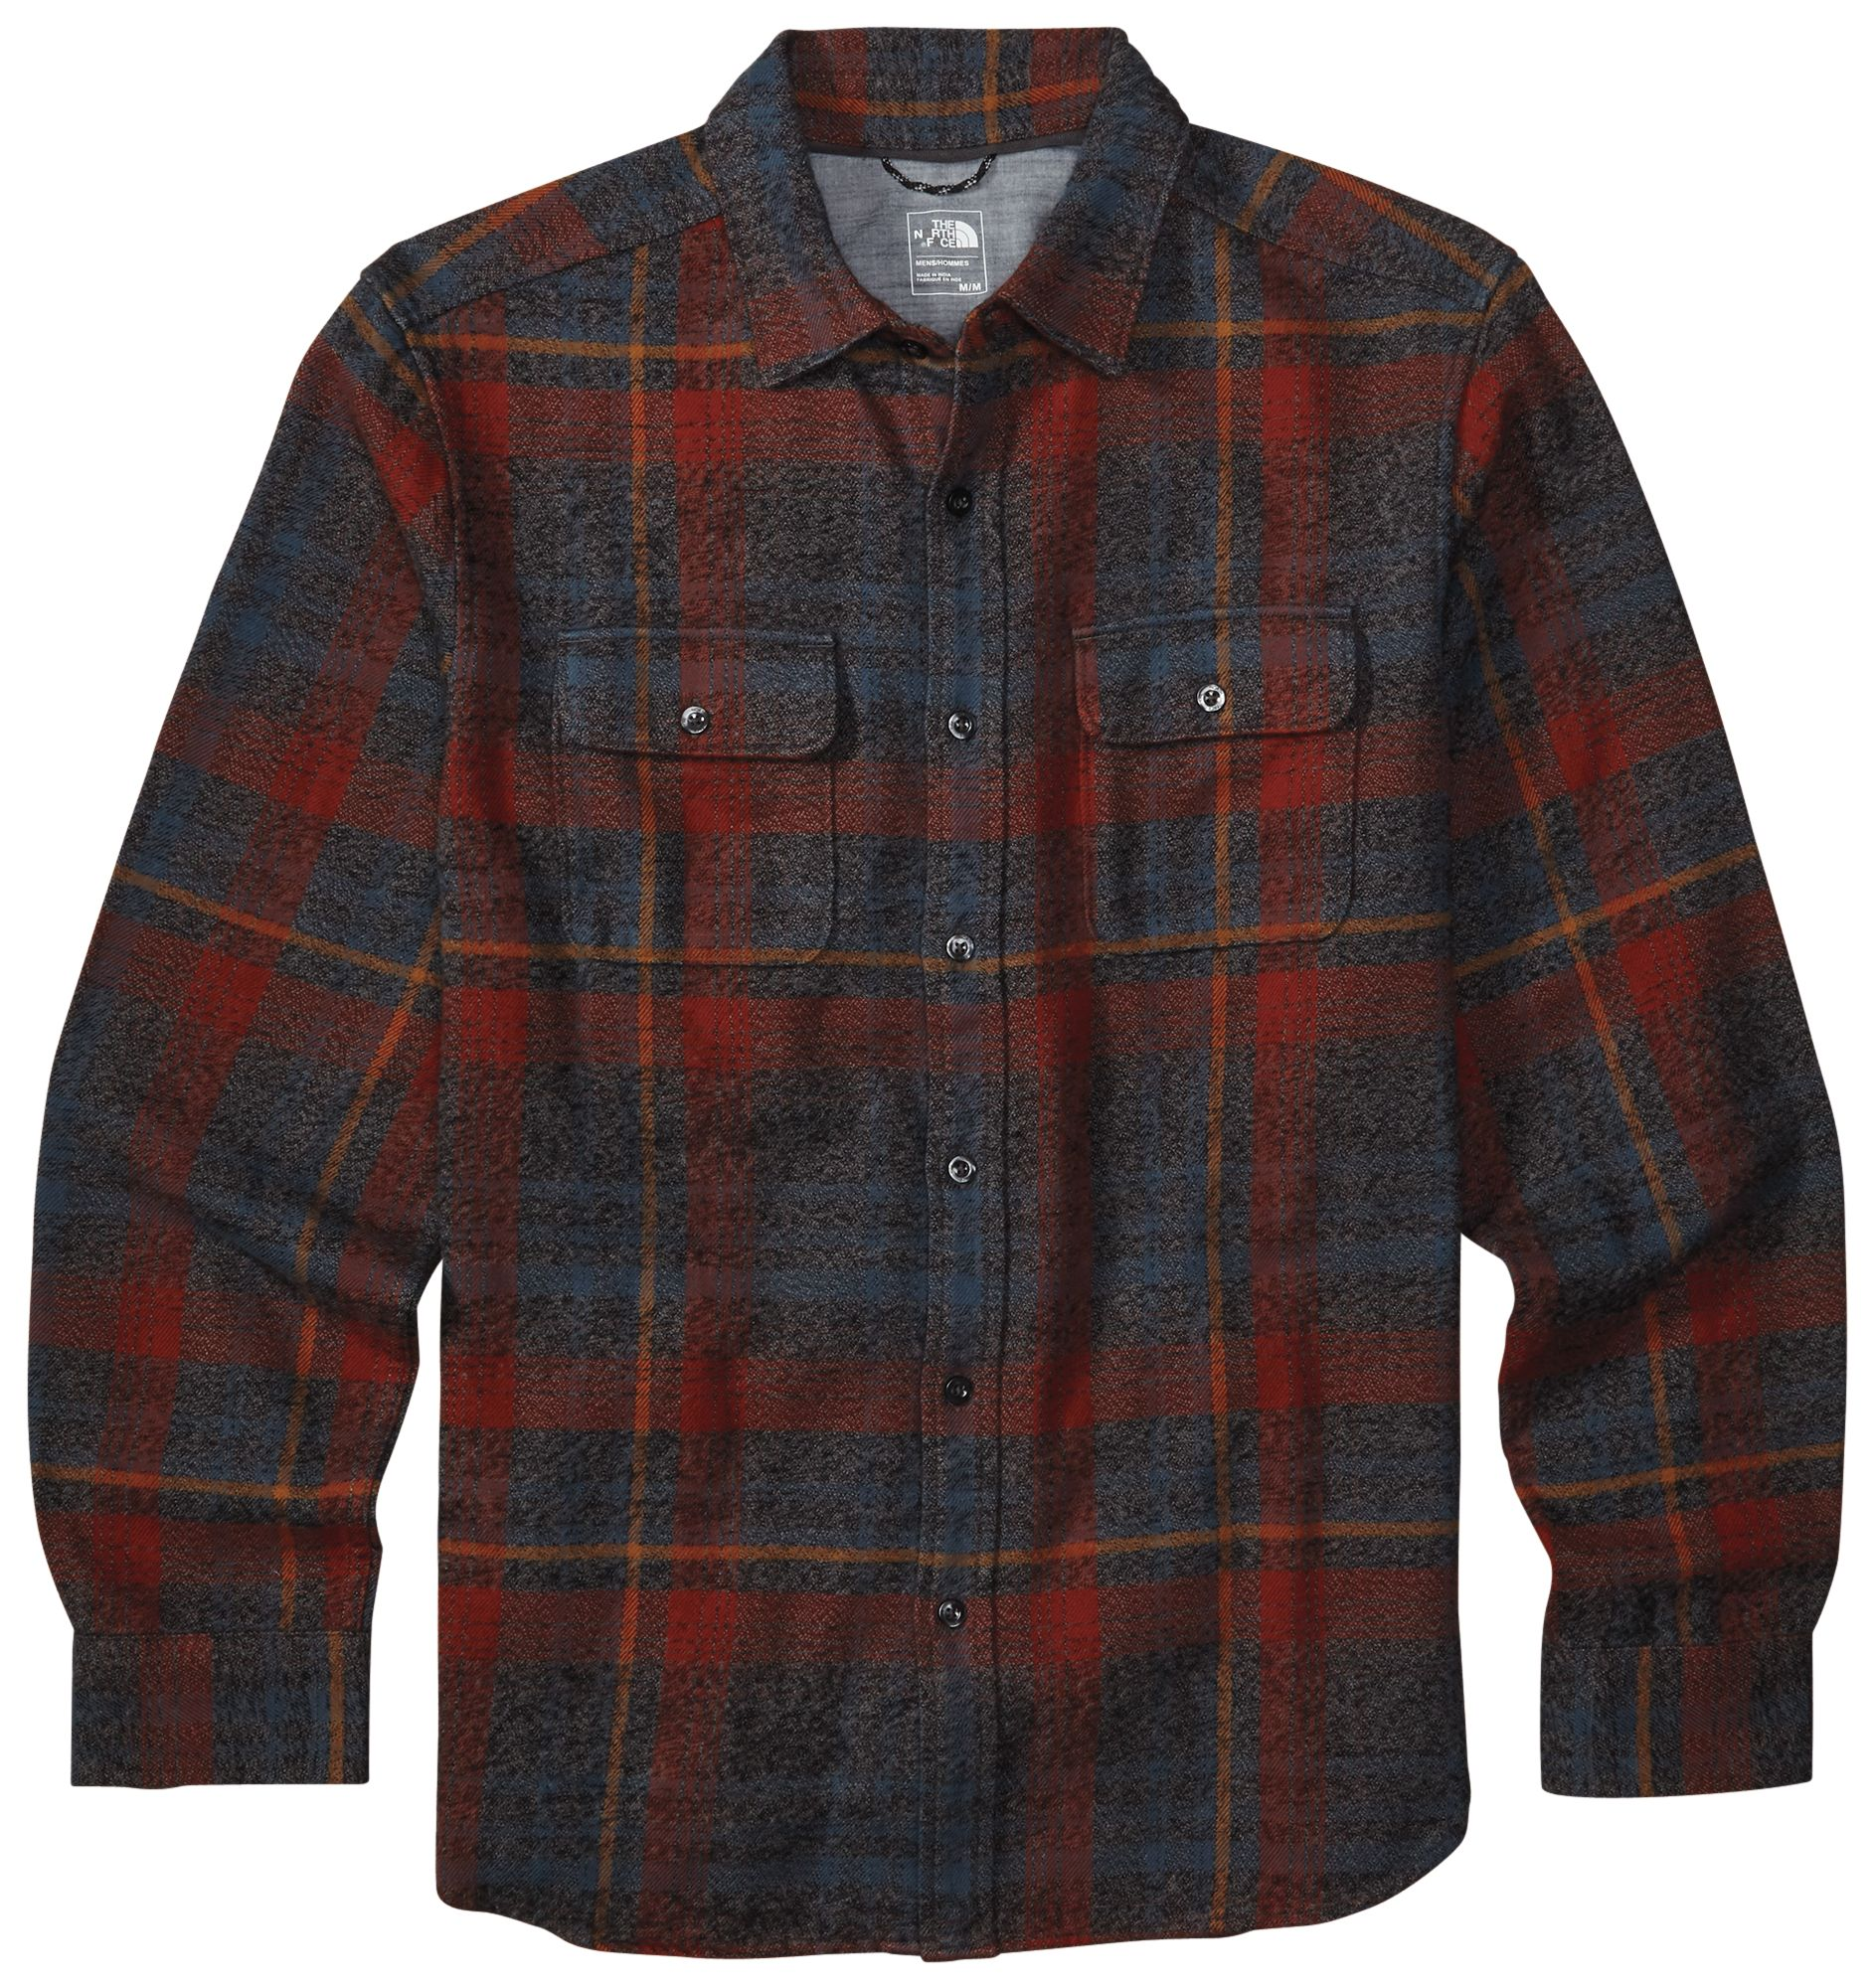 The North Face Men's Arroyo Flannel Long Sleeve Shirt. 0:00. 0:00 / 0:00.  noImageFound ???